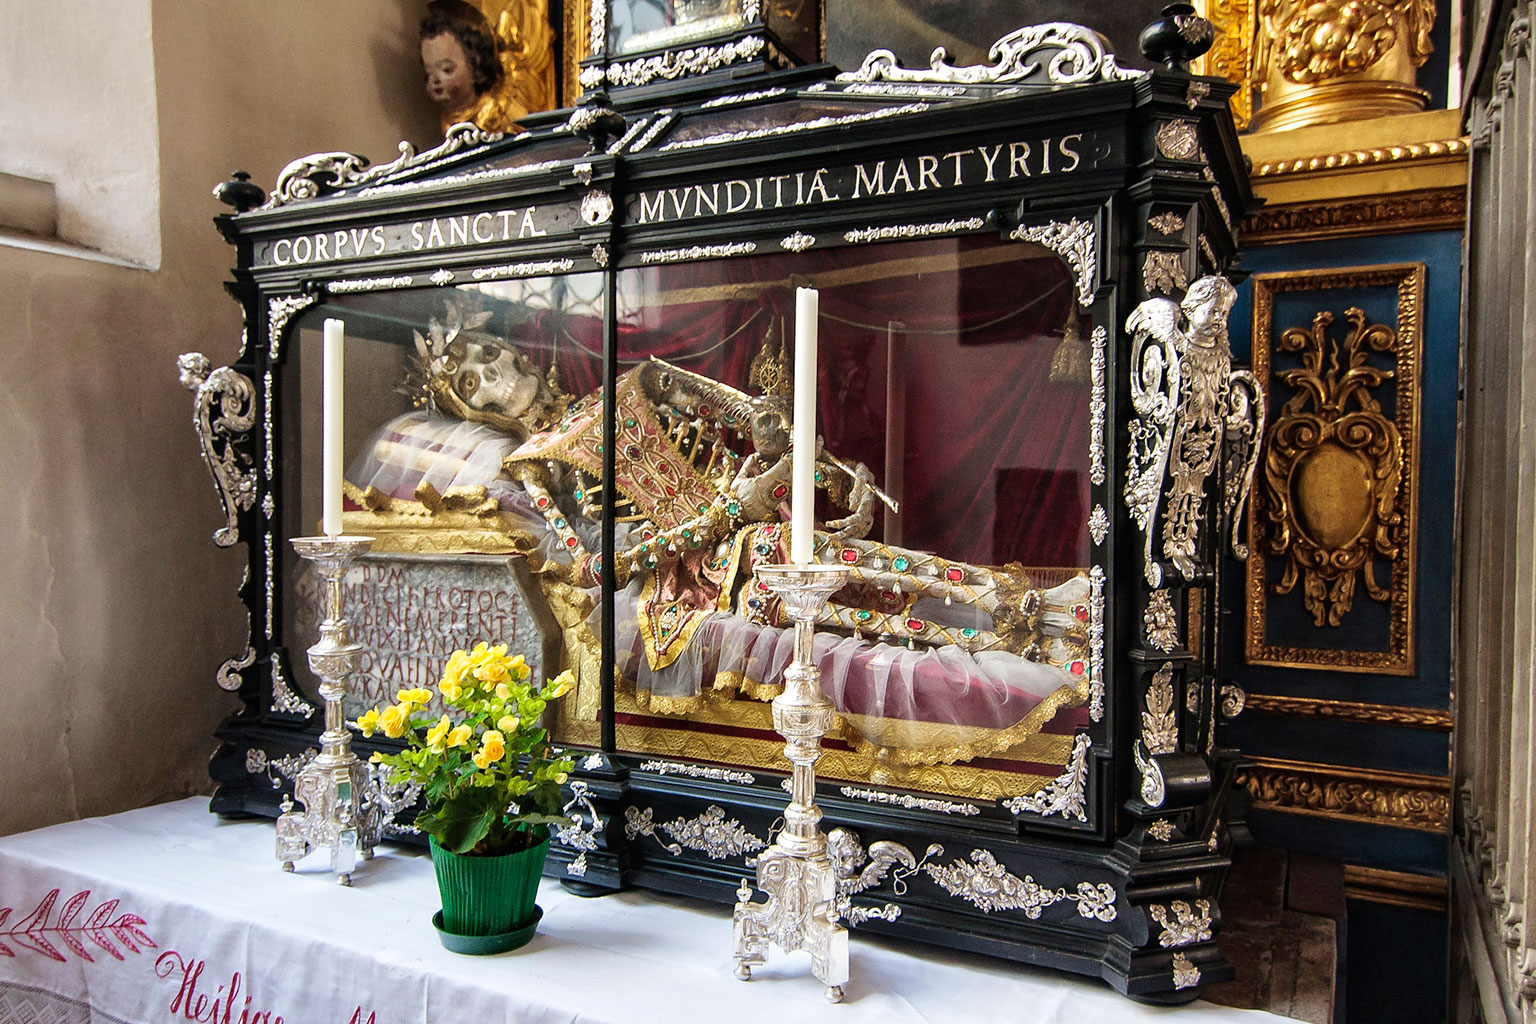 Jeweled Skeleton of Saint Munditia